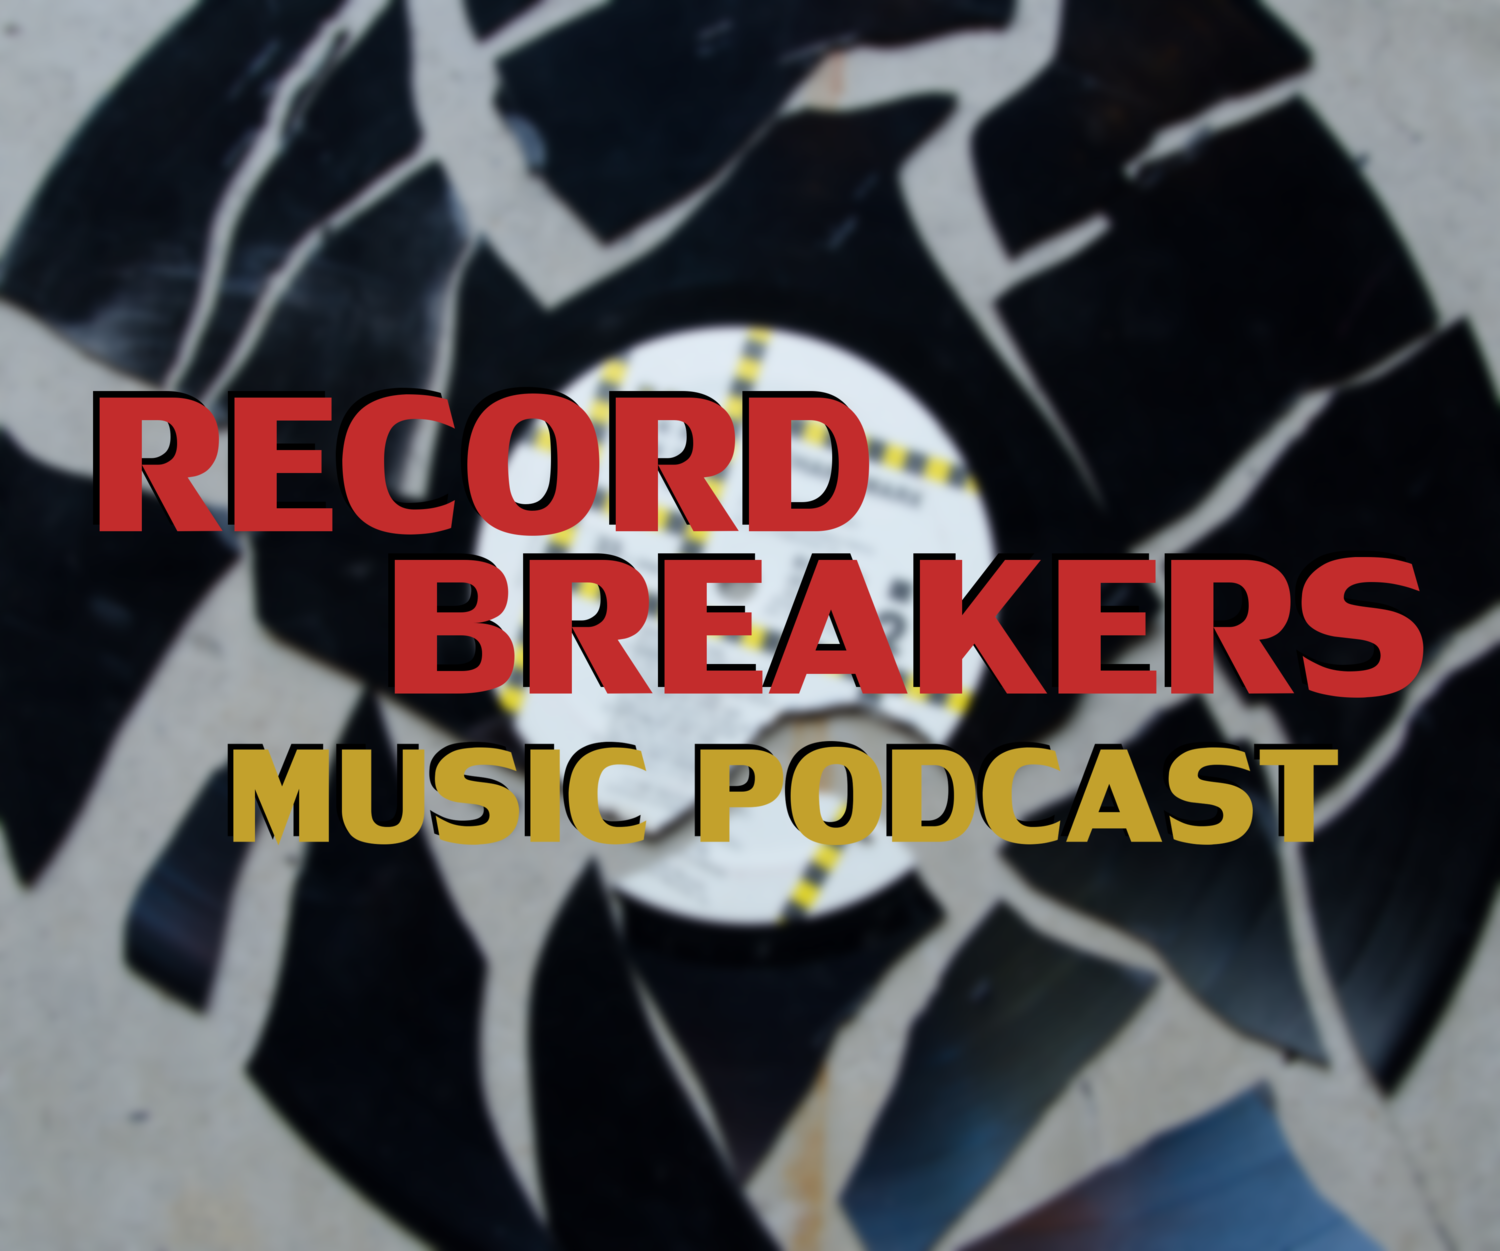 Record Breakers Music Podcast - Rabelly Podcast Network